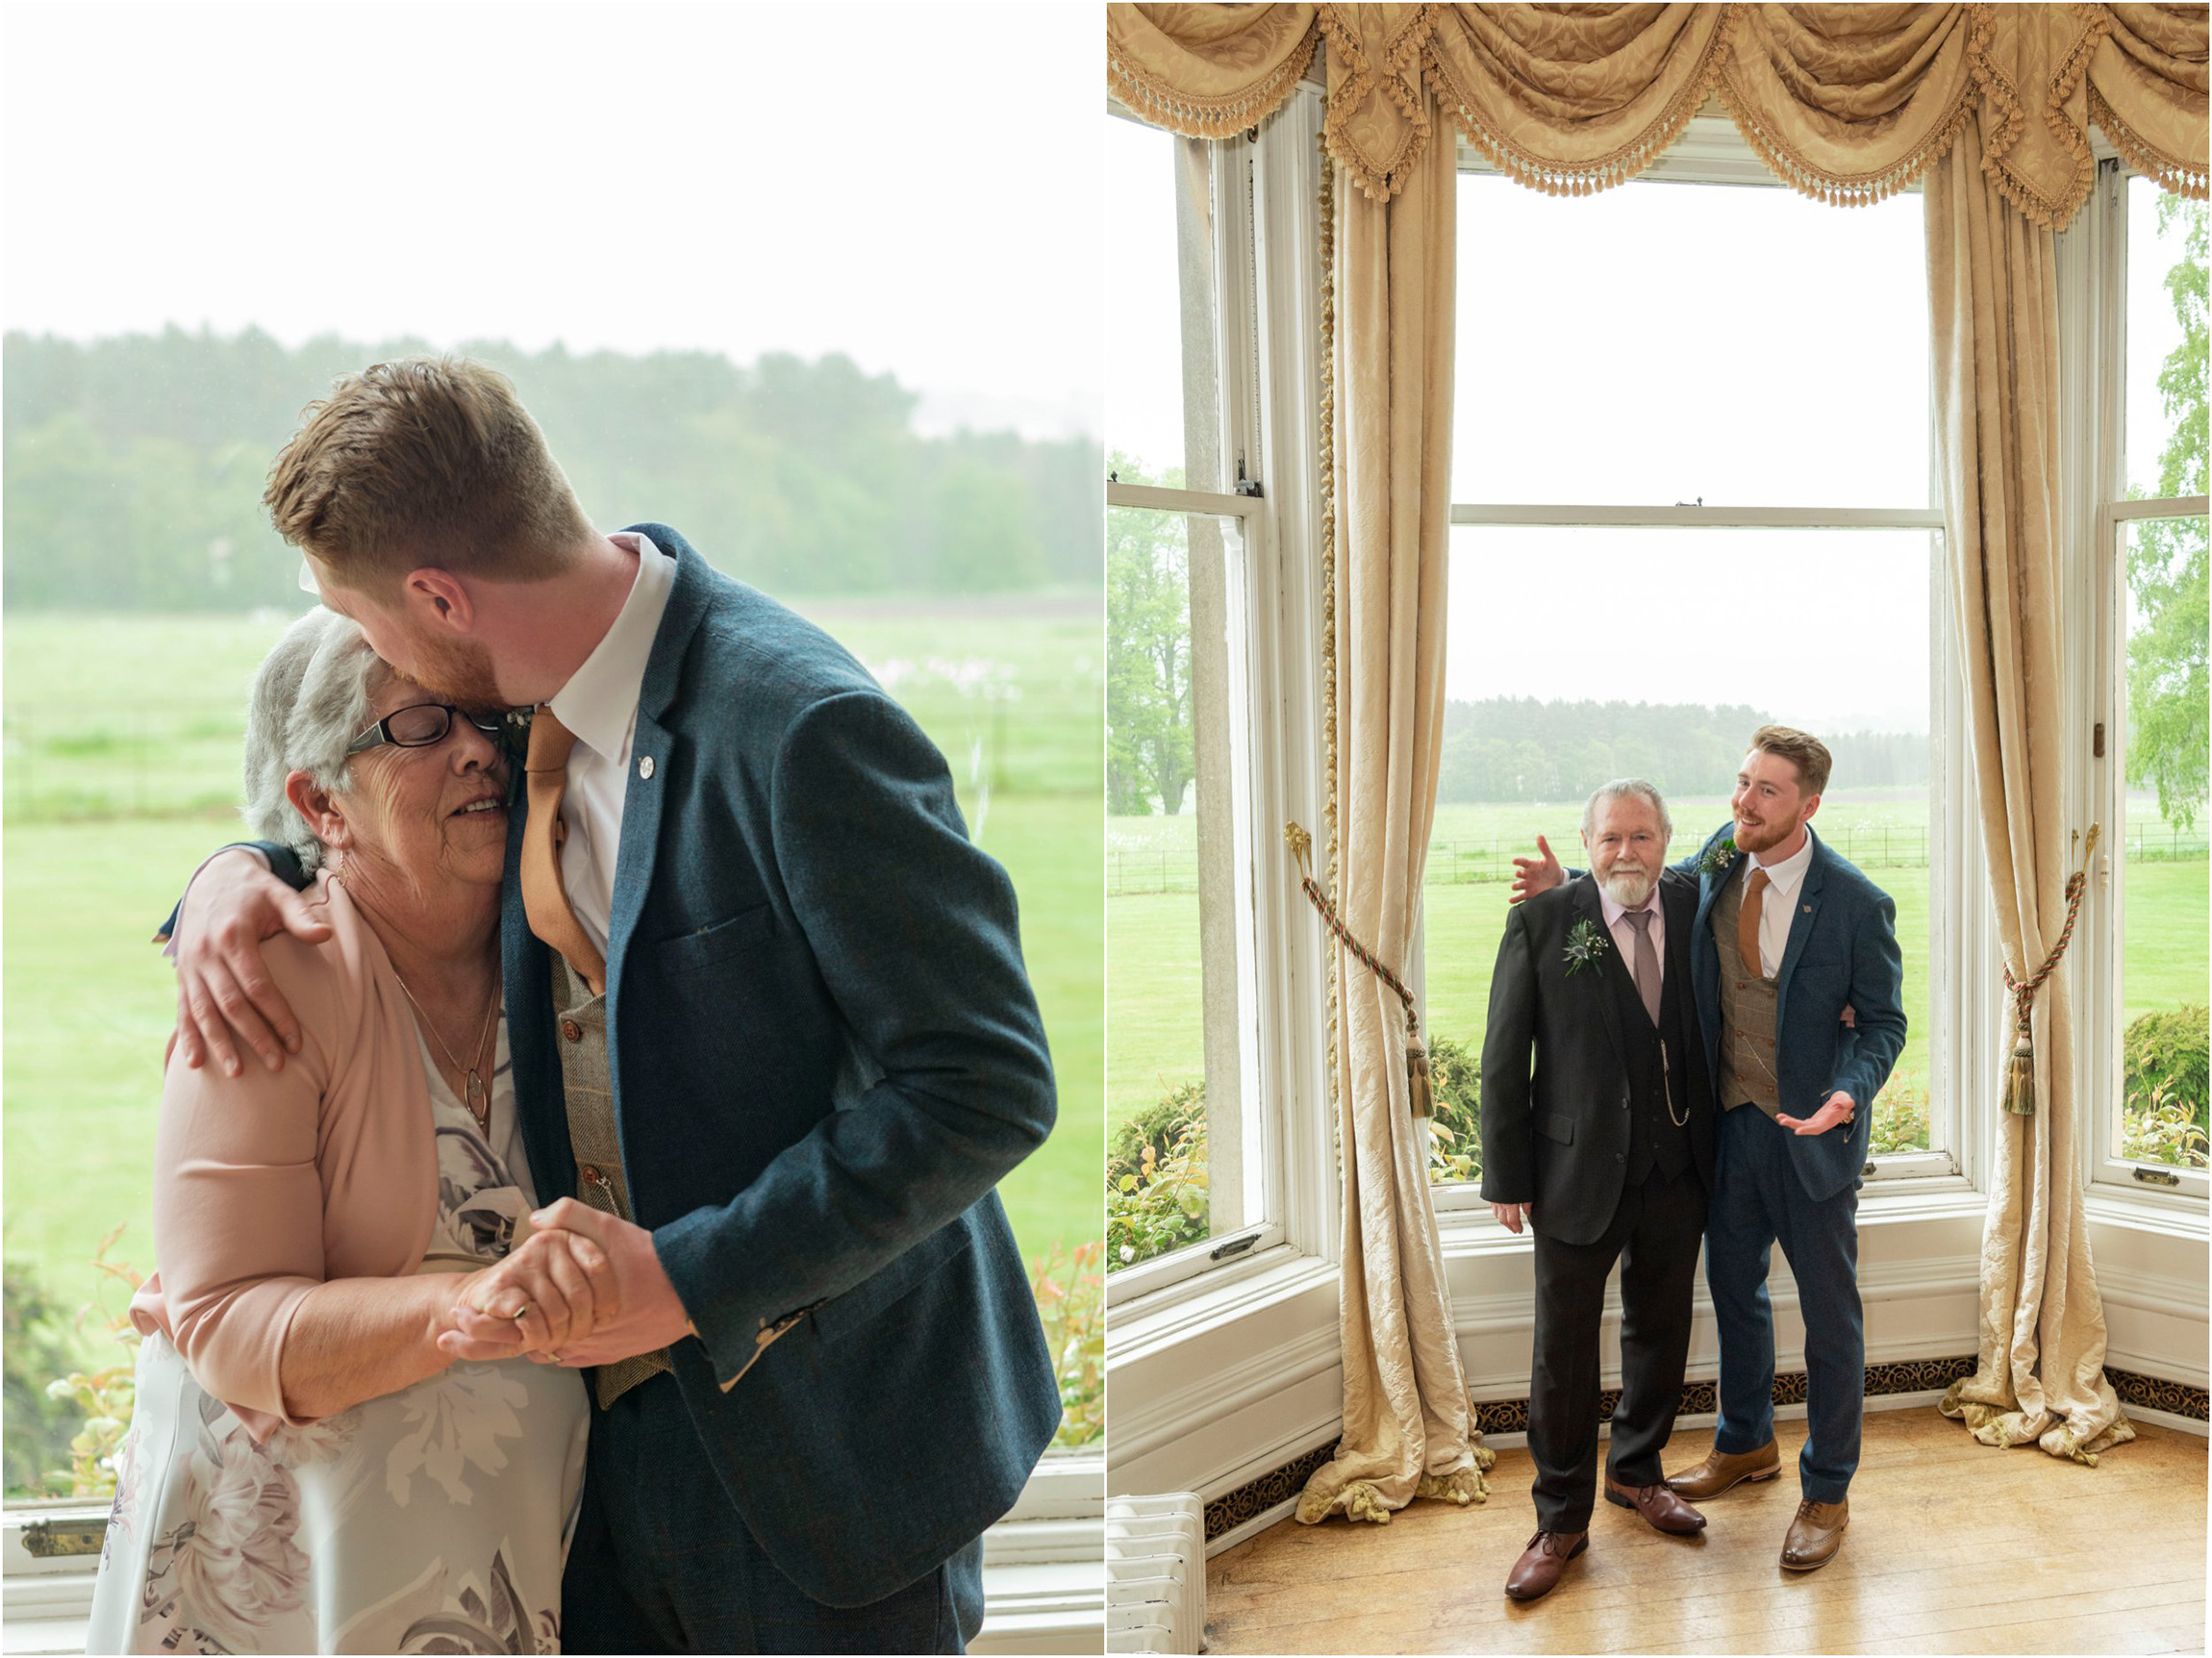 ©FianderFoto_Scotland Wedding Photographer_Errol Park Estate_Janine_Karl_099.jpg